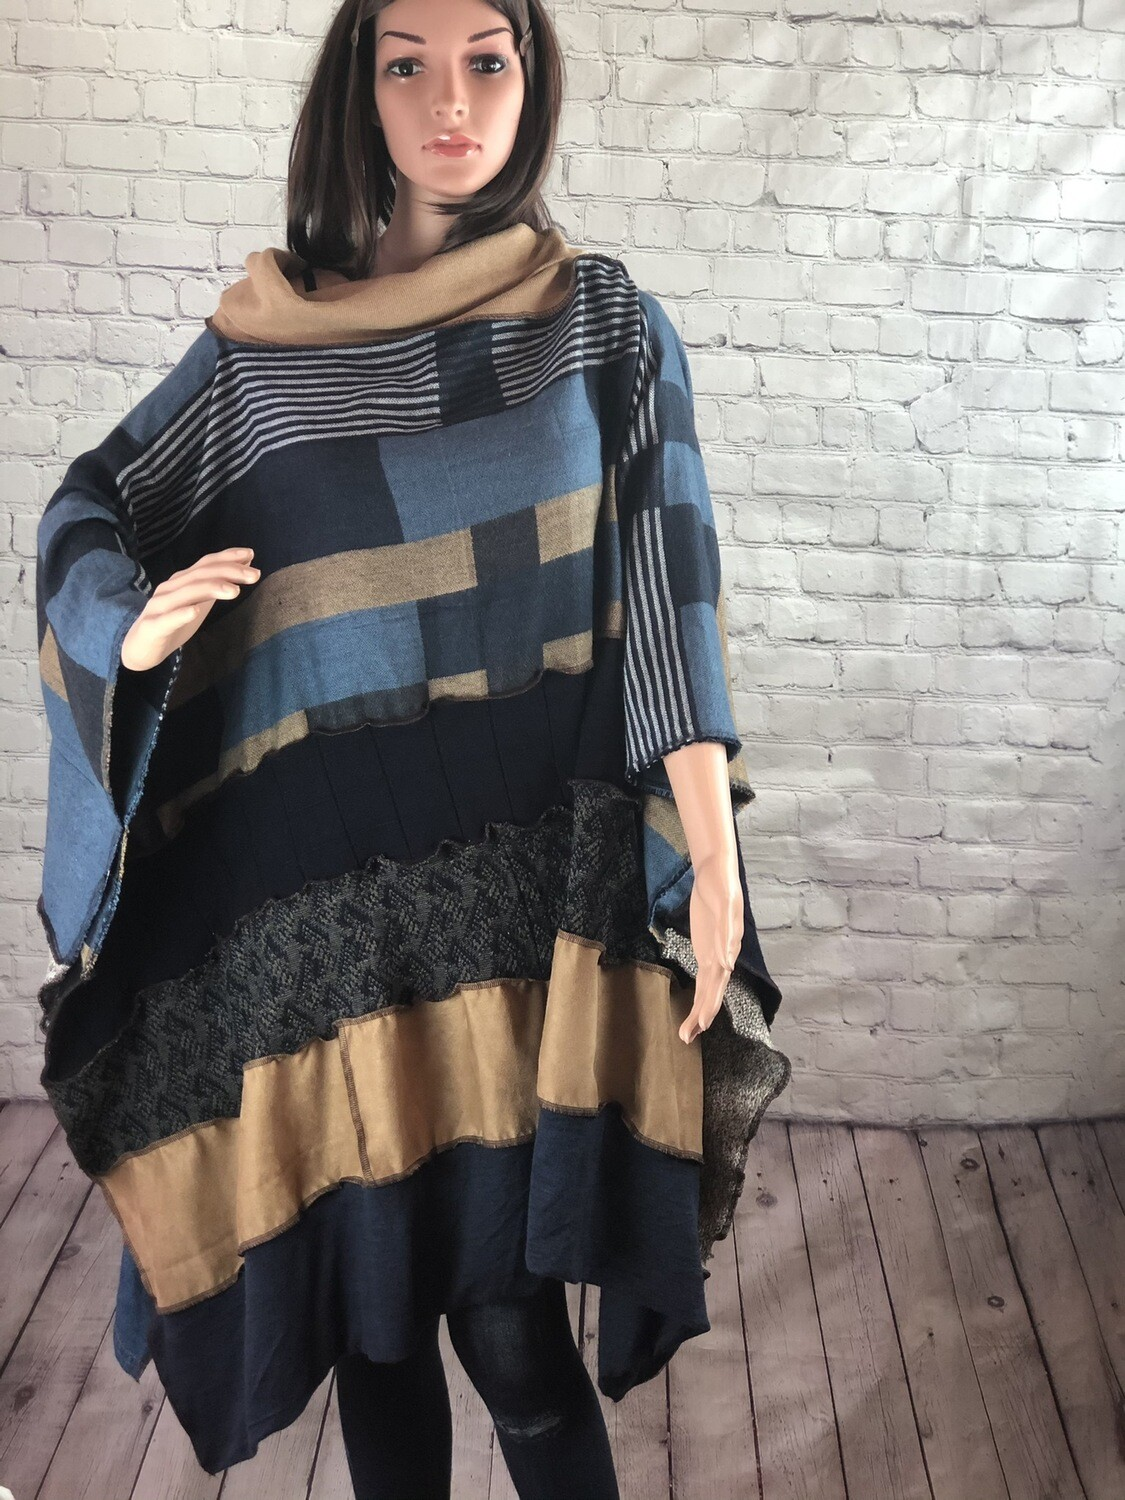 Navy Blue Sweater Suede Poncho Sustainable Fashion Mixed Material Ruffle Hem OOAK One Size Fit Comfy S Threads Boutique Design